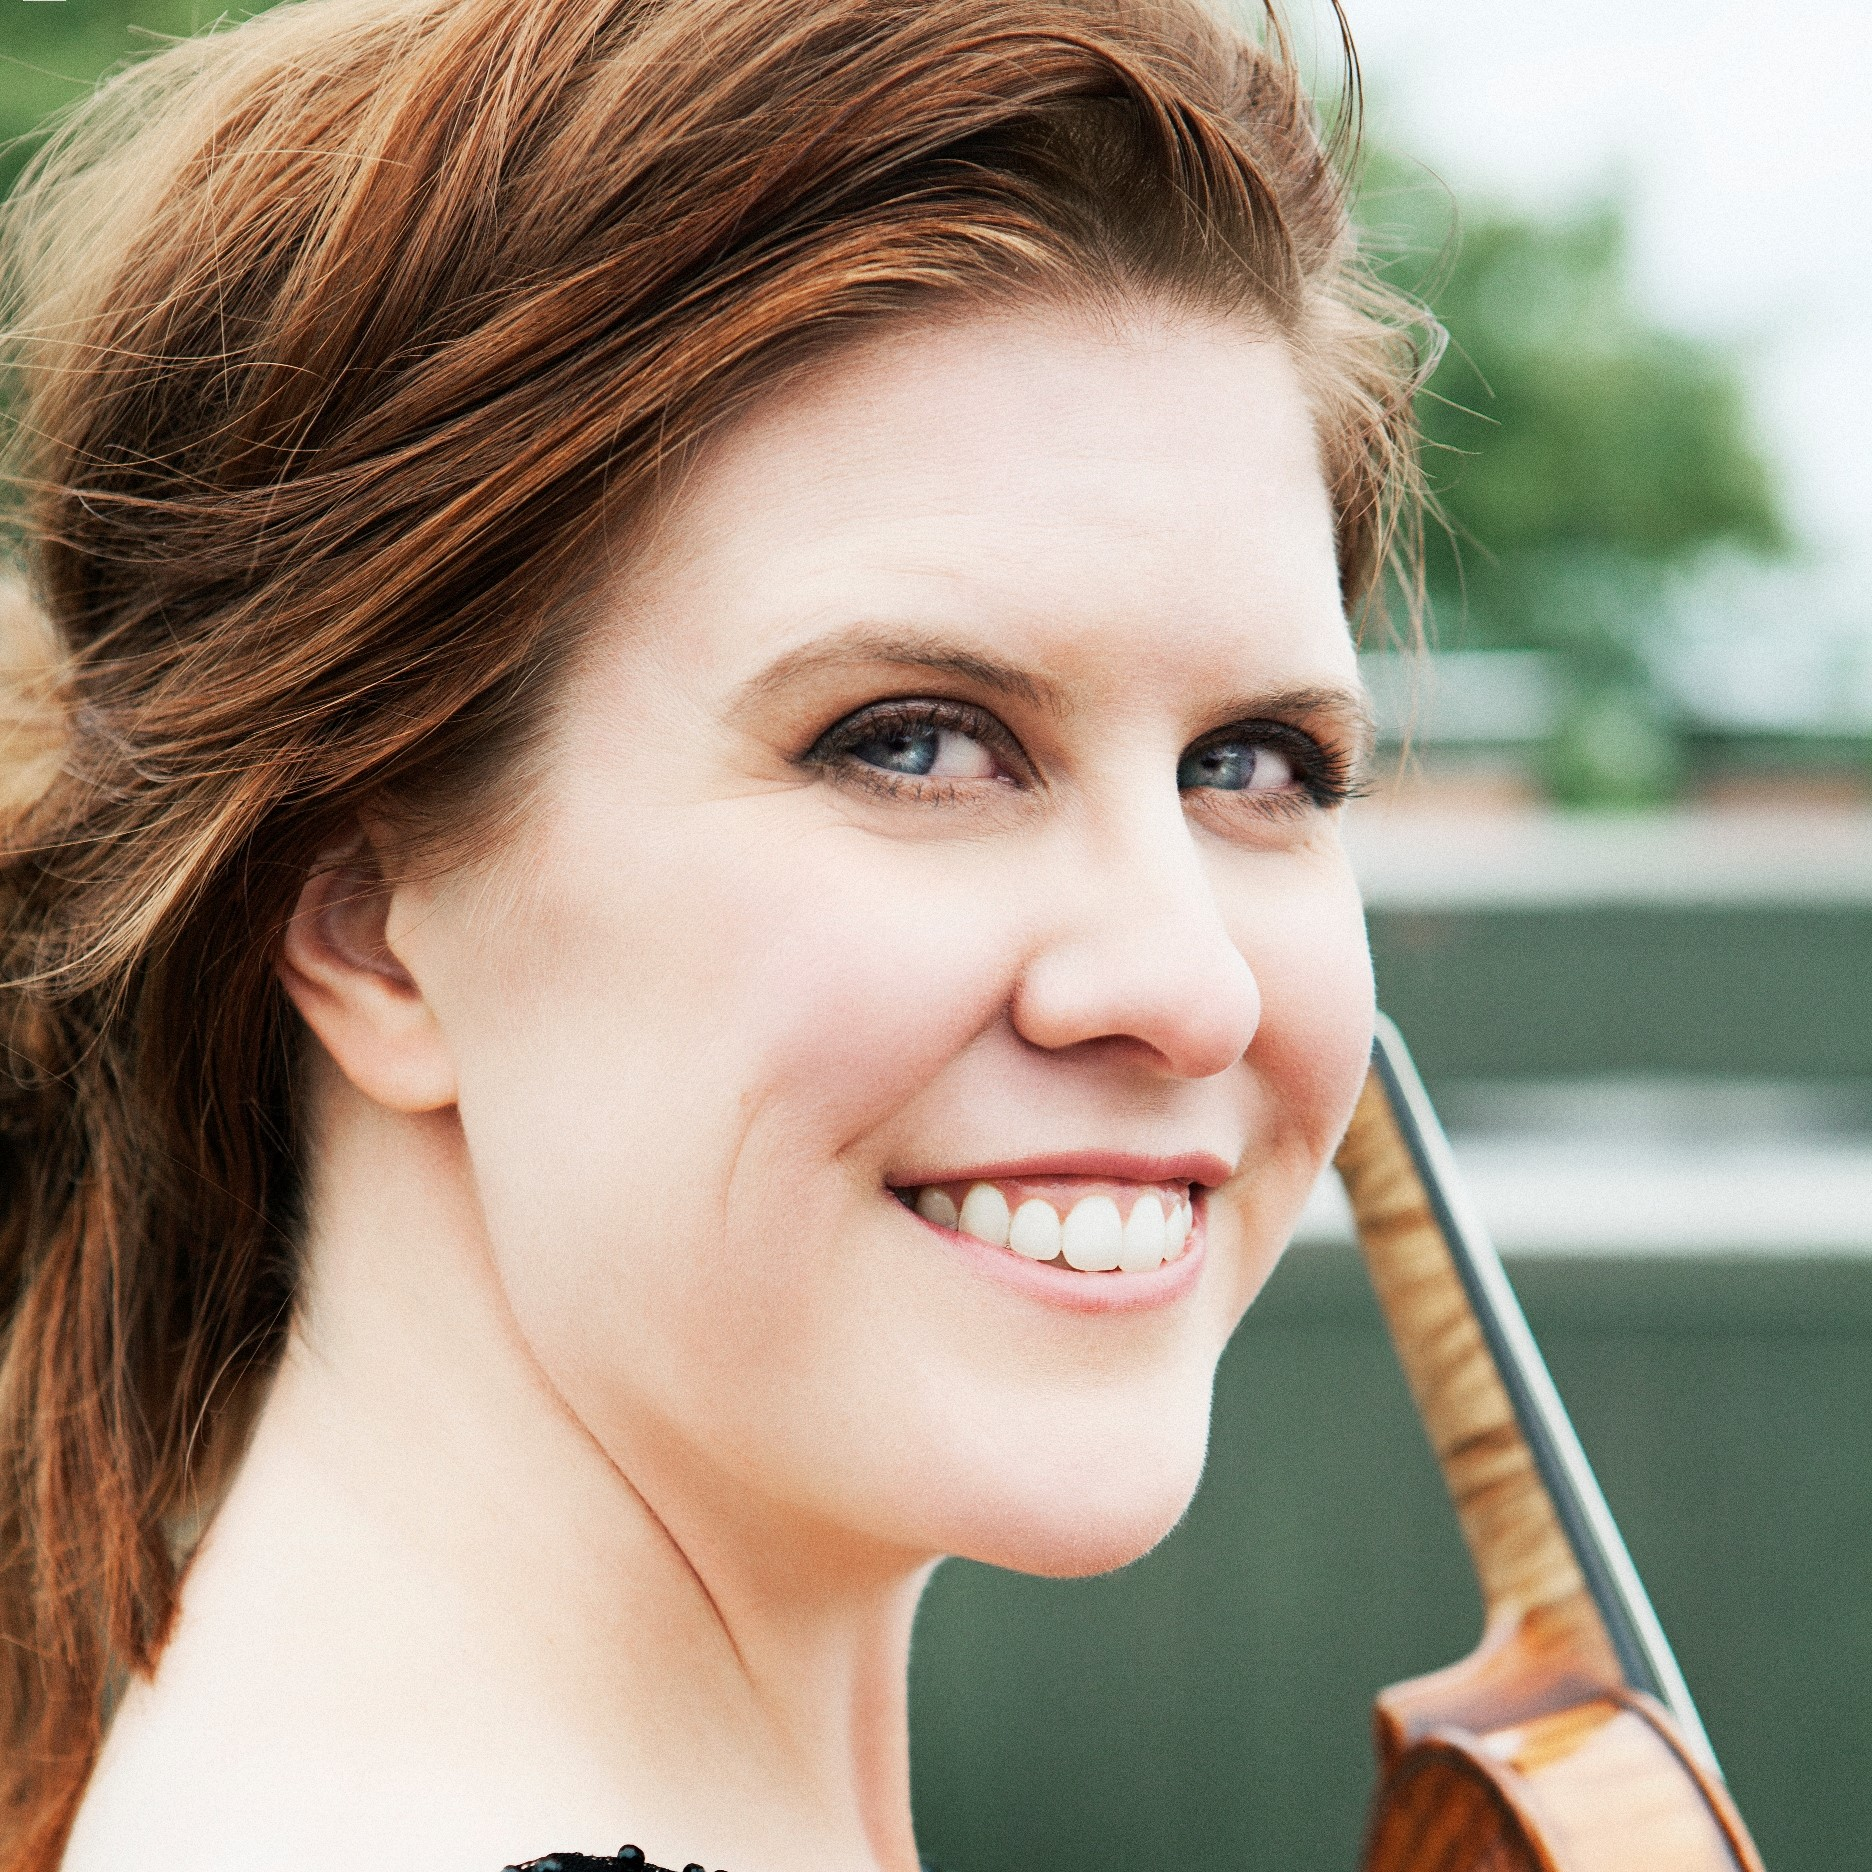 https://www.seattlechambermusic.org/wp-content/uploads/Erin-Keefe-1.jpg